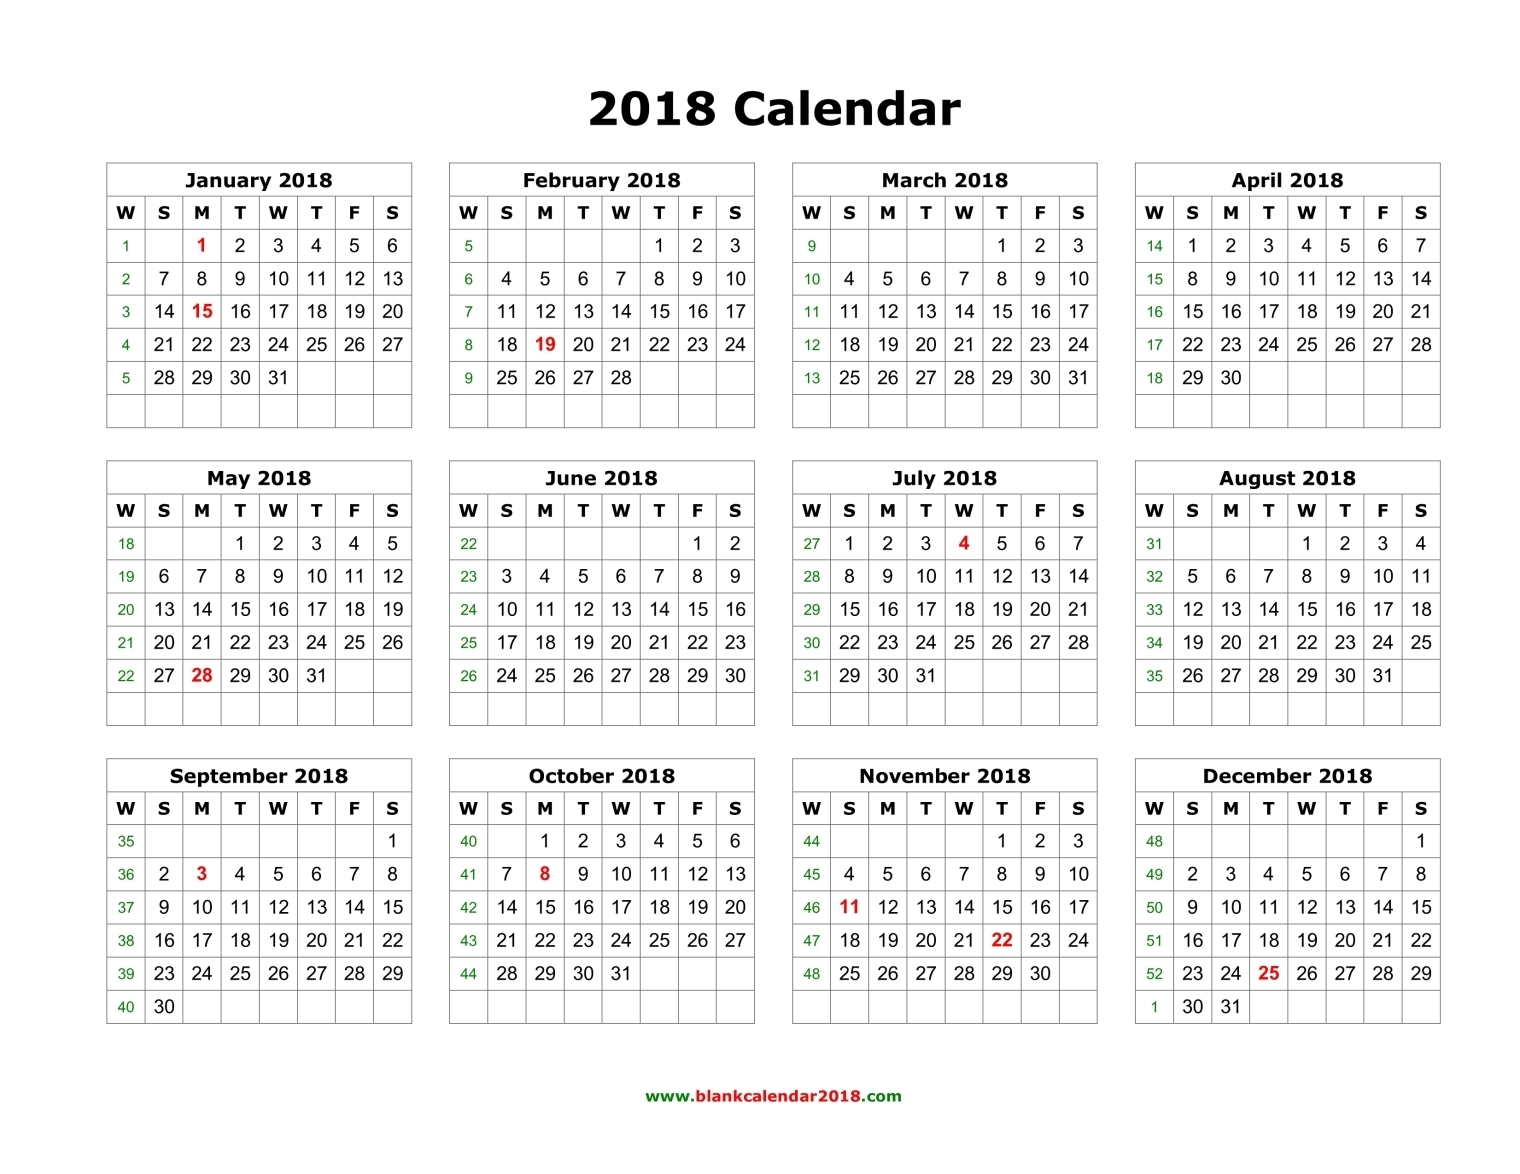 Blank Calendar 2018 inside Monthly Calendar Templates Portrait Editable